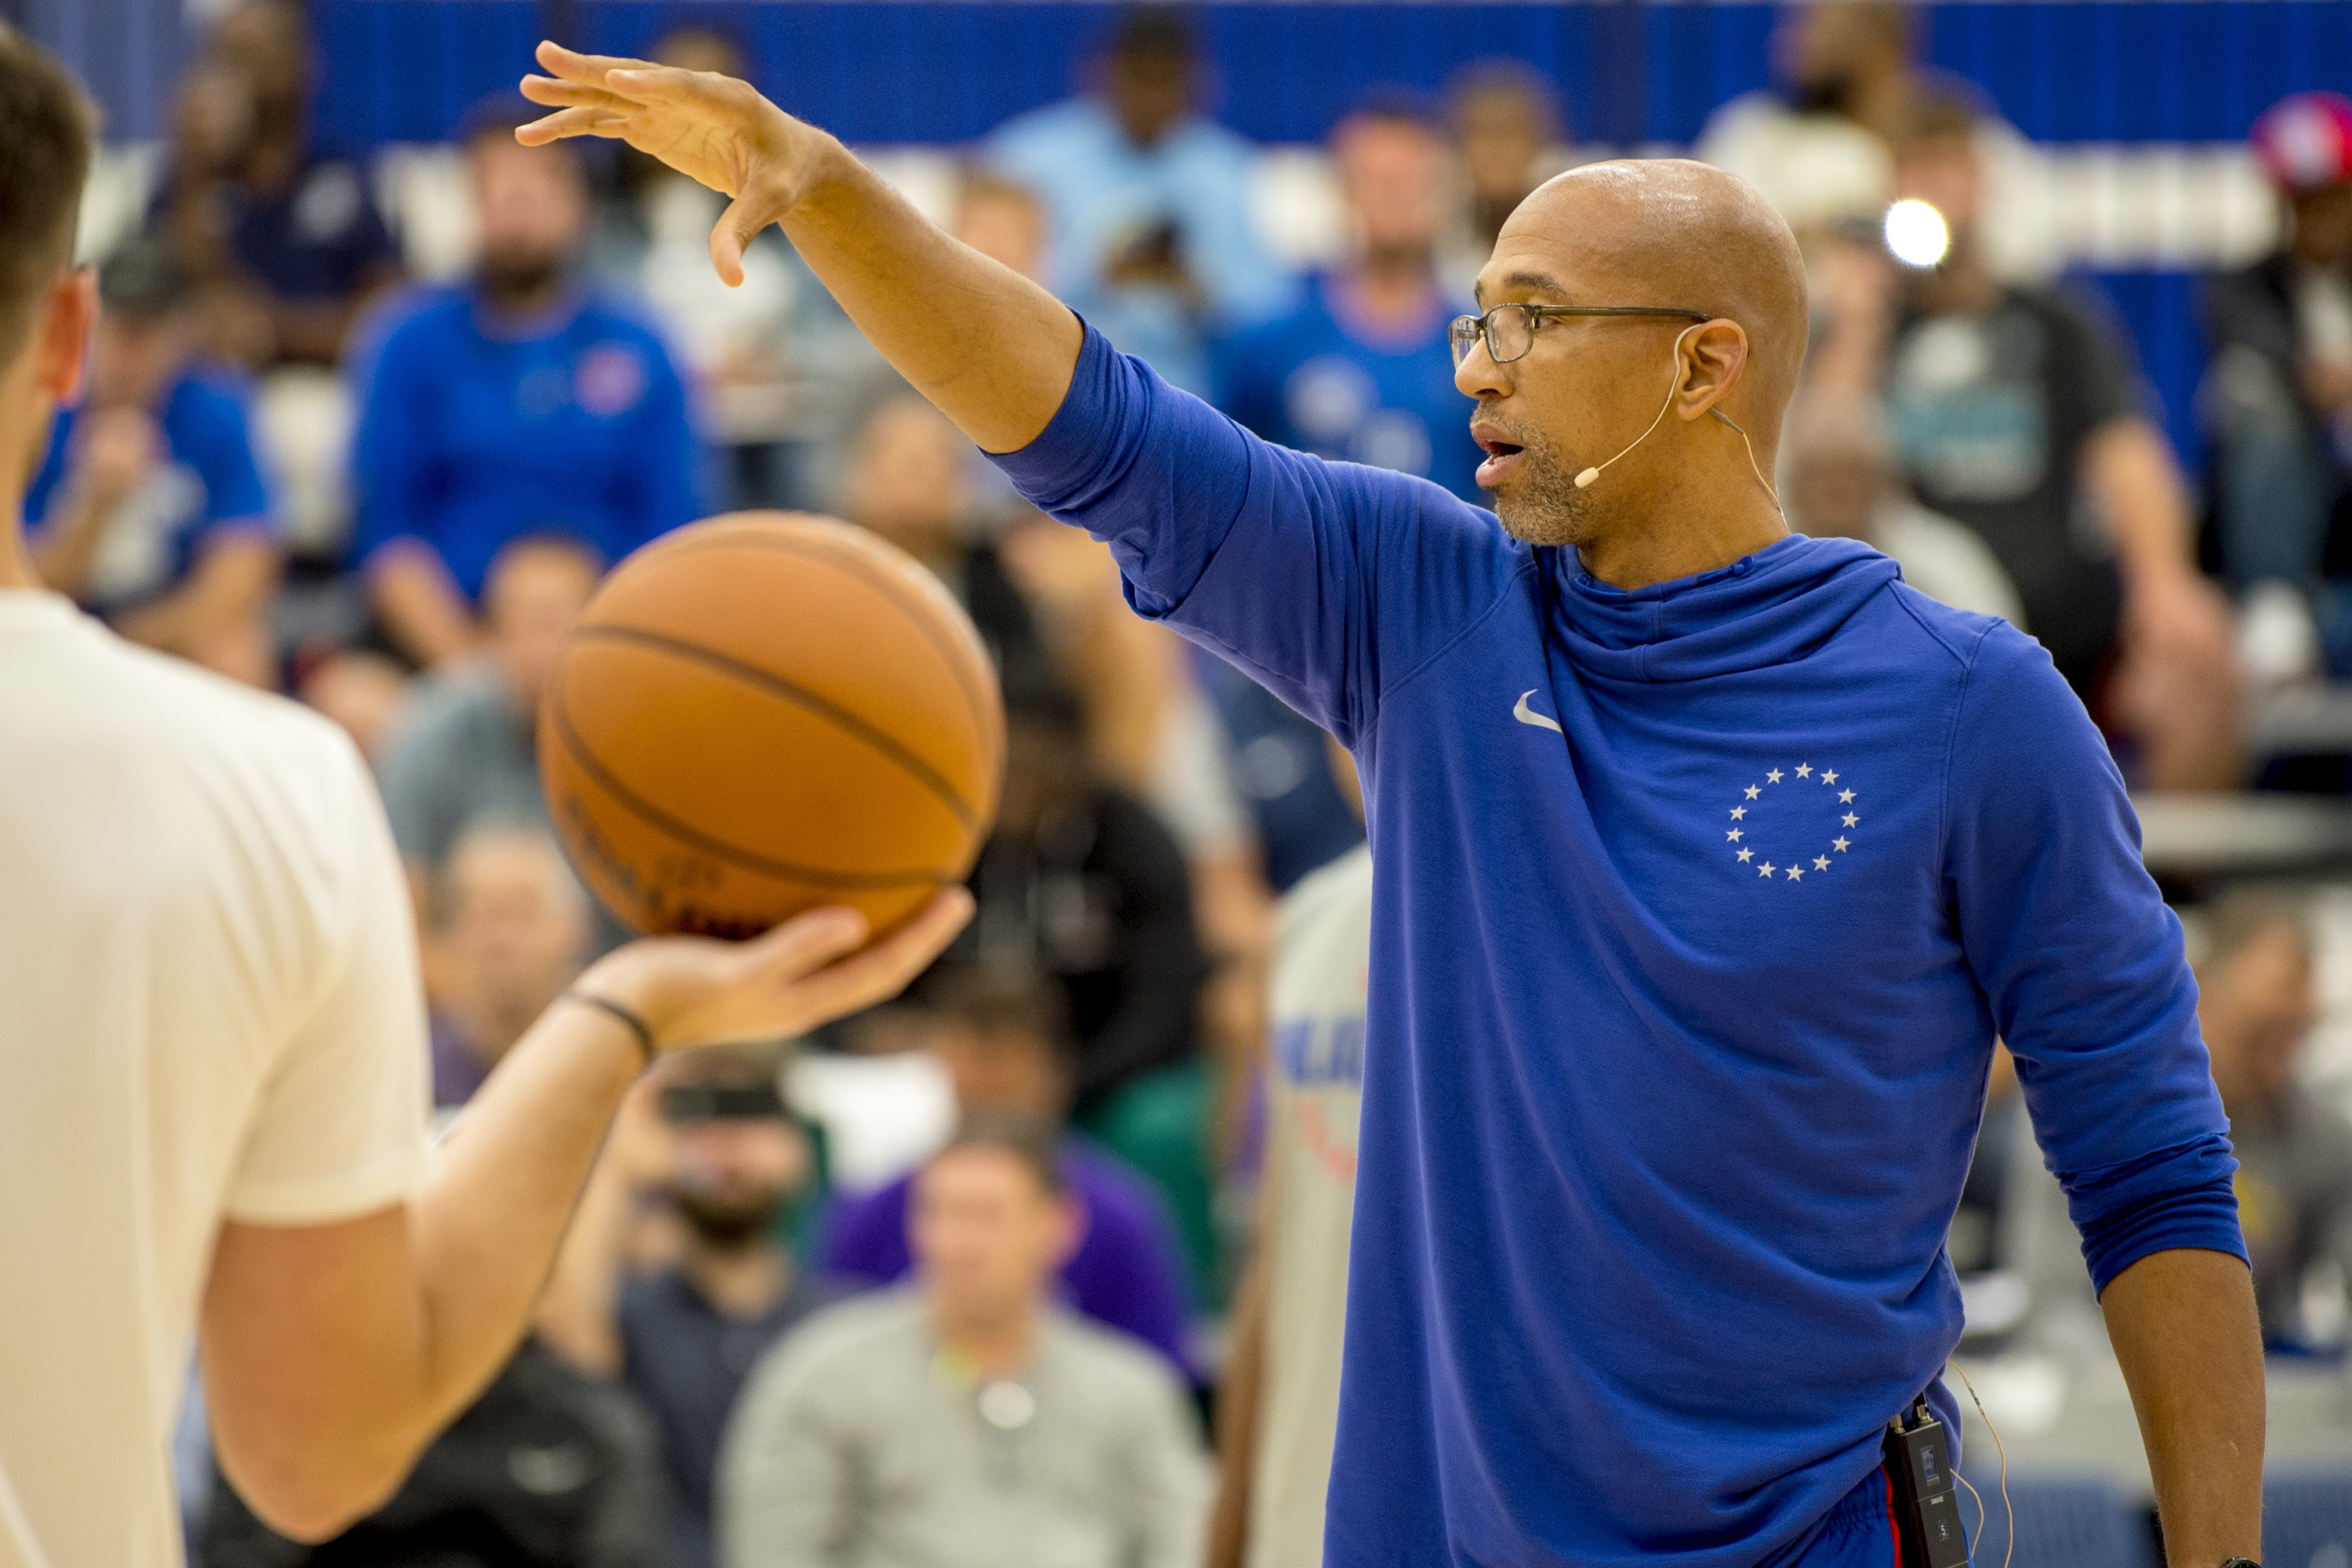 Philadelphia 76ers assistants coach Monty Williams leads a clinic during the fourth annual coachesÕ clinic hosted by Head Coach Brett Brown at the team�s Training Complex in Camden September 17, 2018.